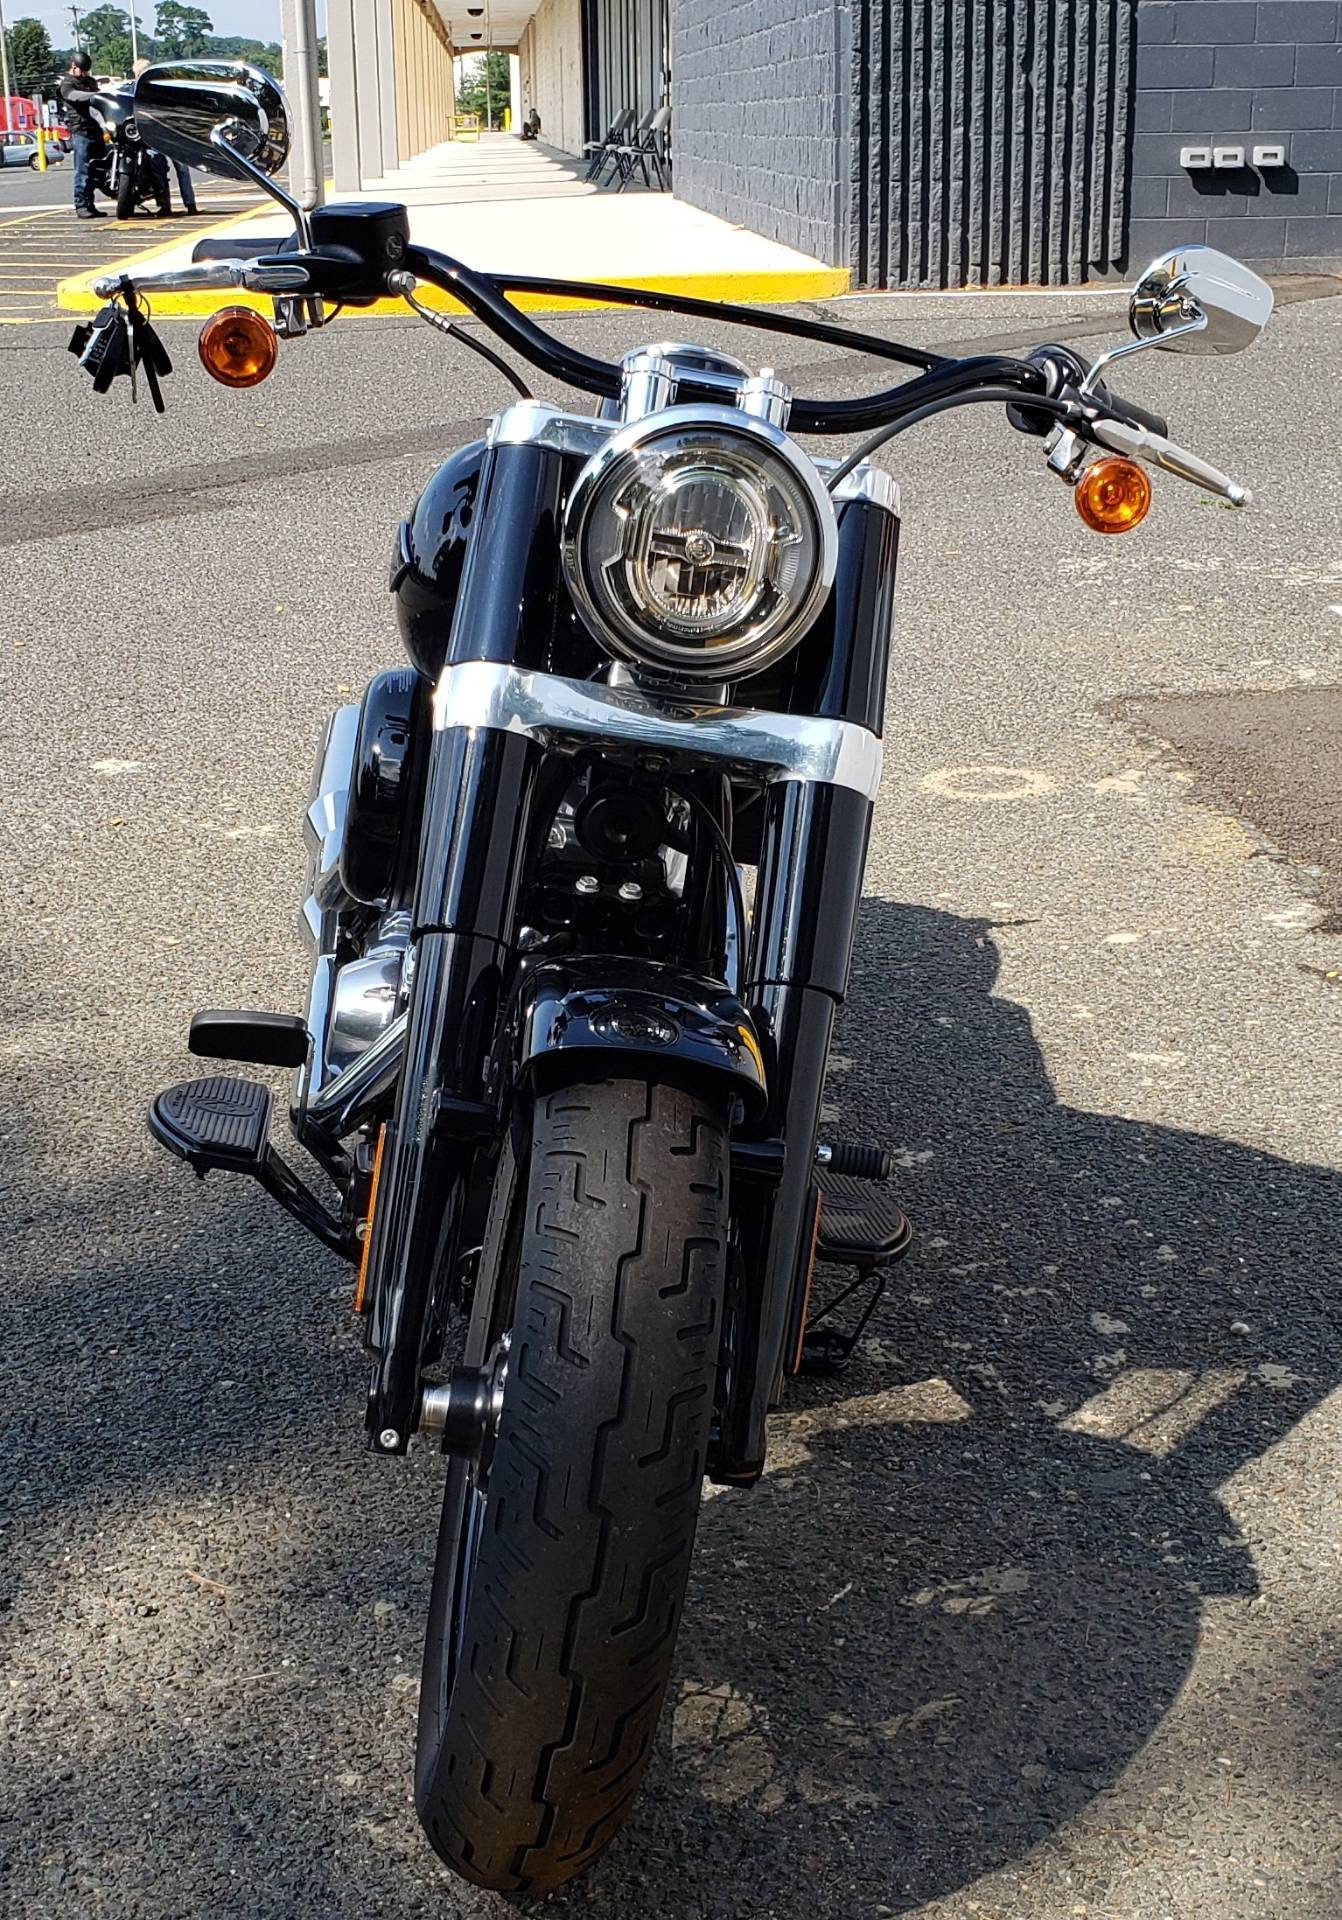 2019 Harley-Davidson Softail Slim® in West Long Branch, New Jersey - Photo 4